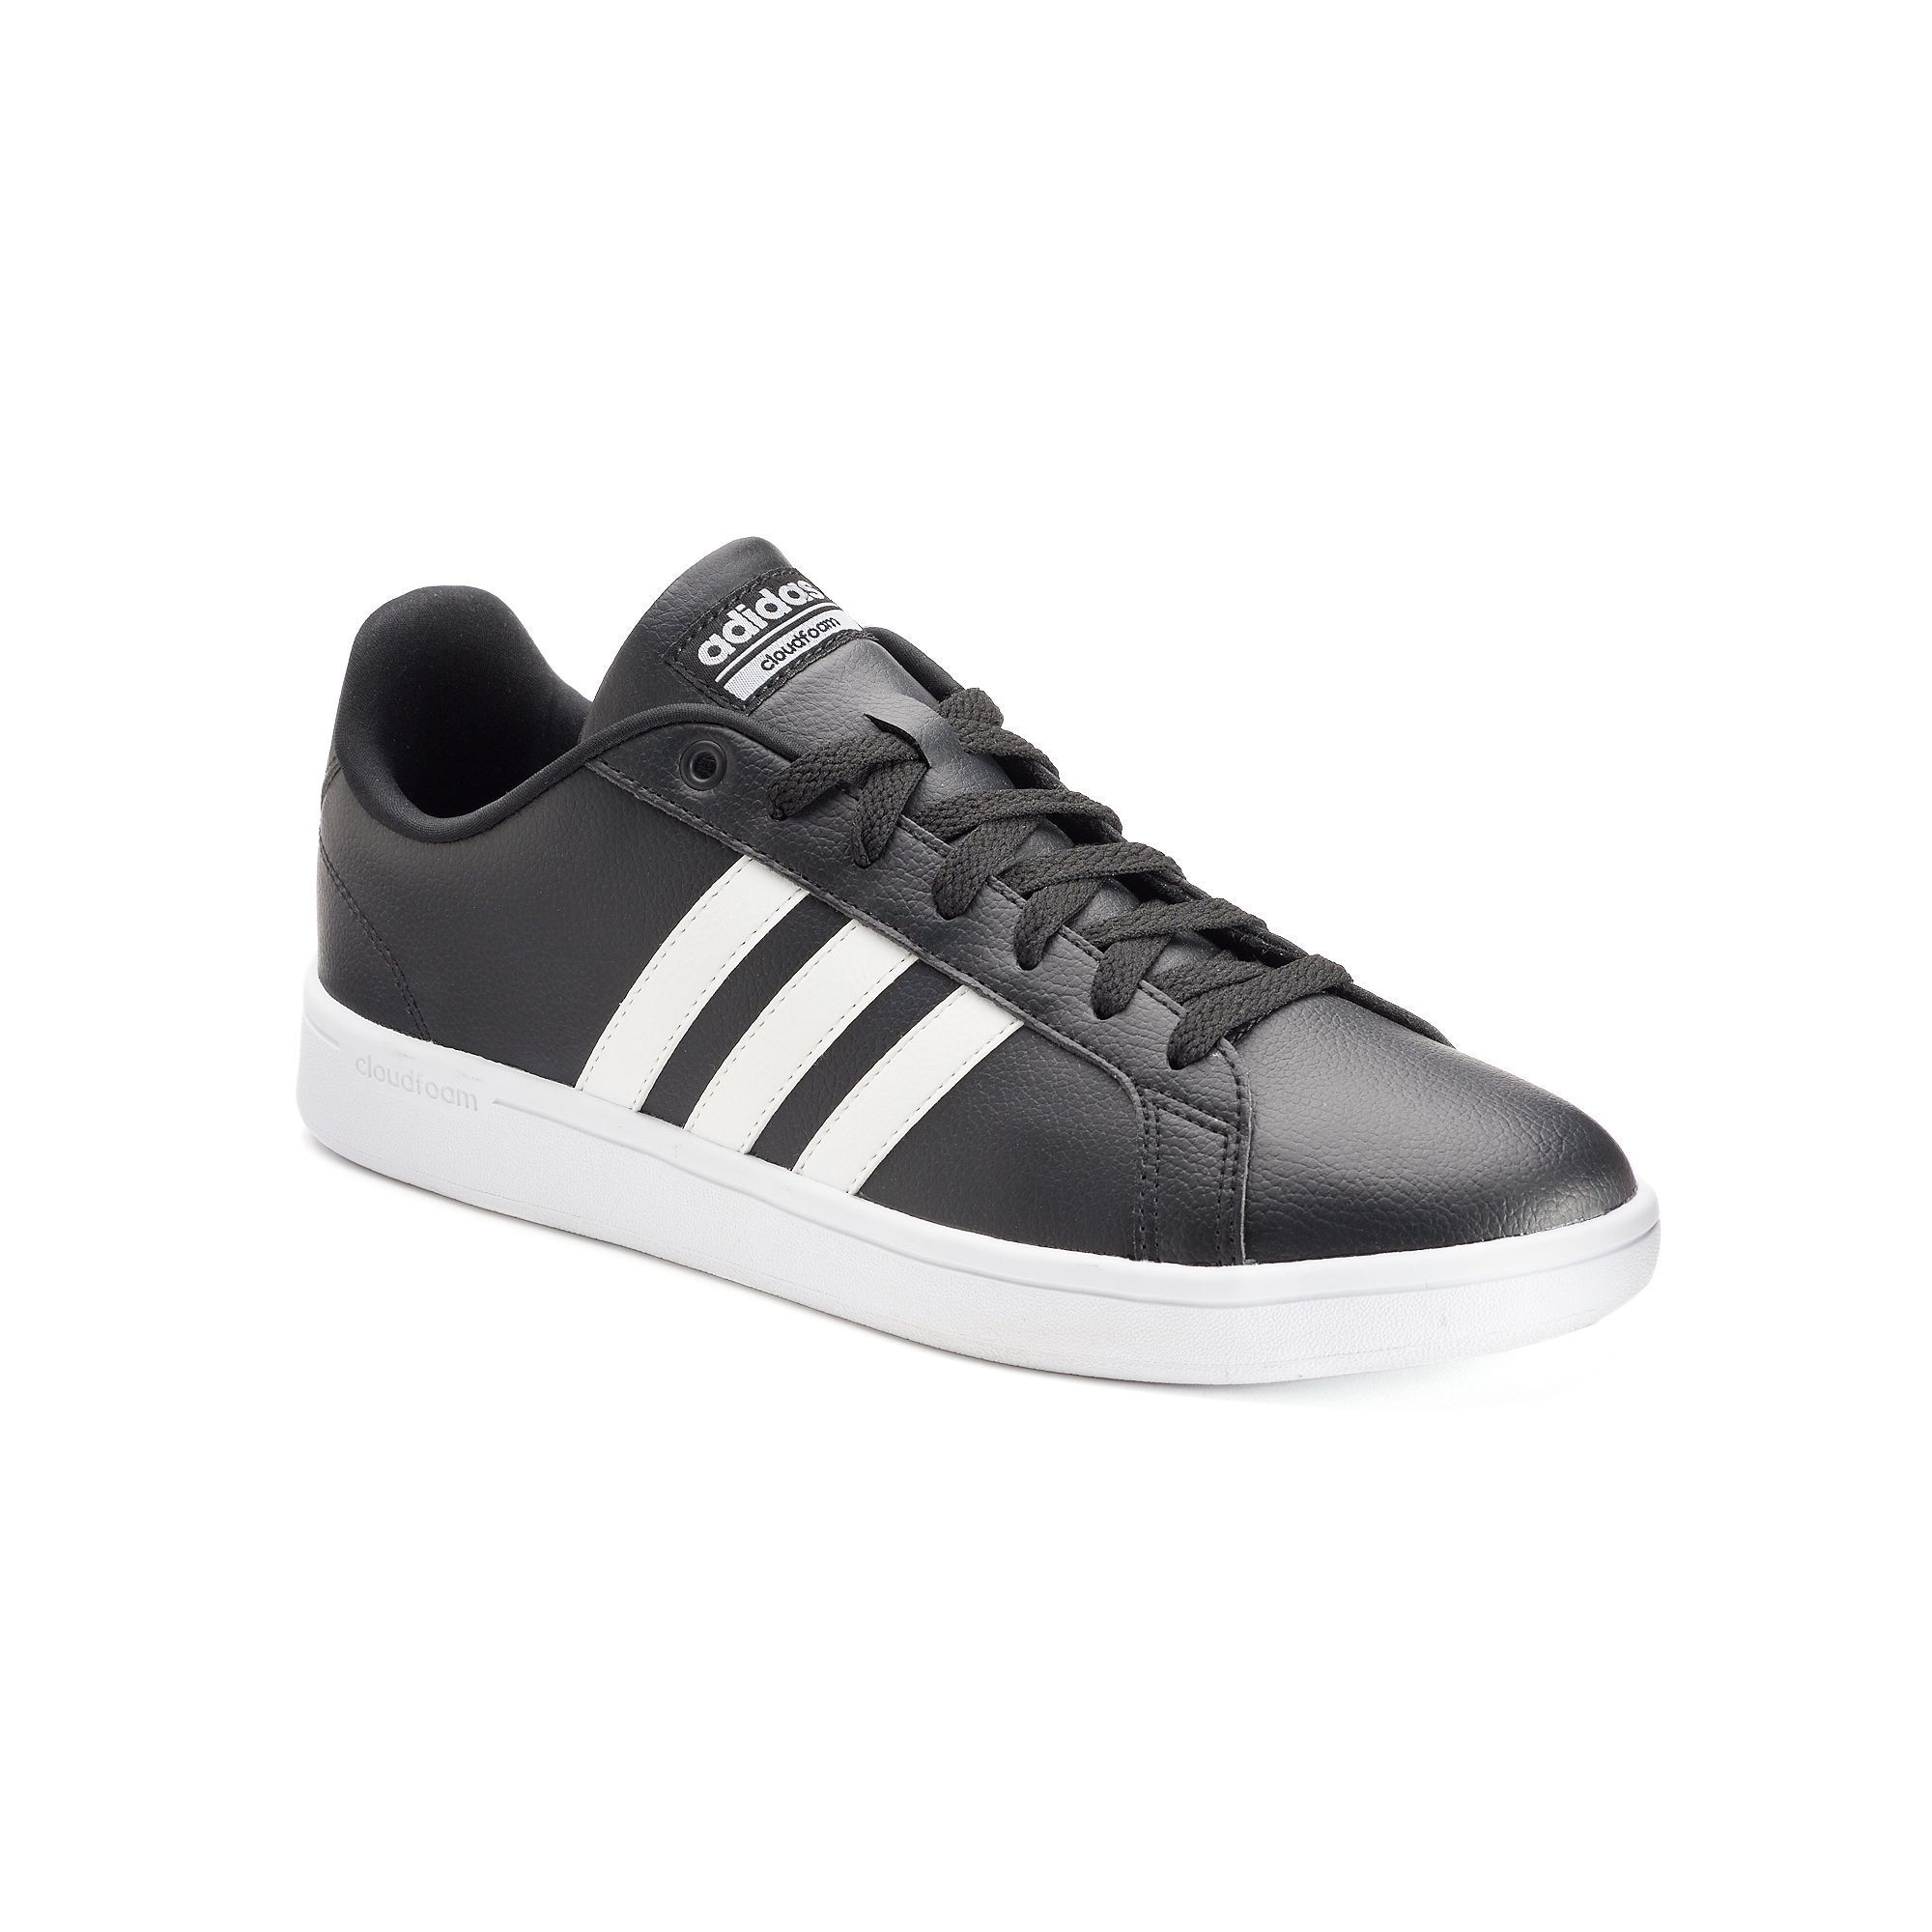 adidas men's cloudfoam advantage shoes